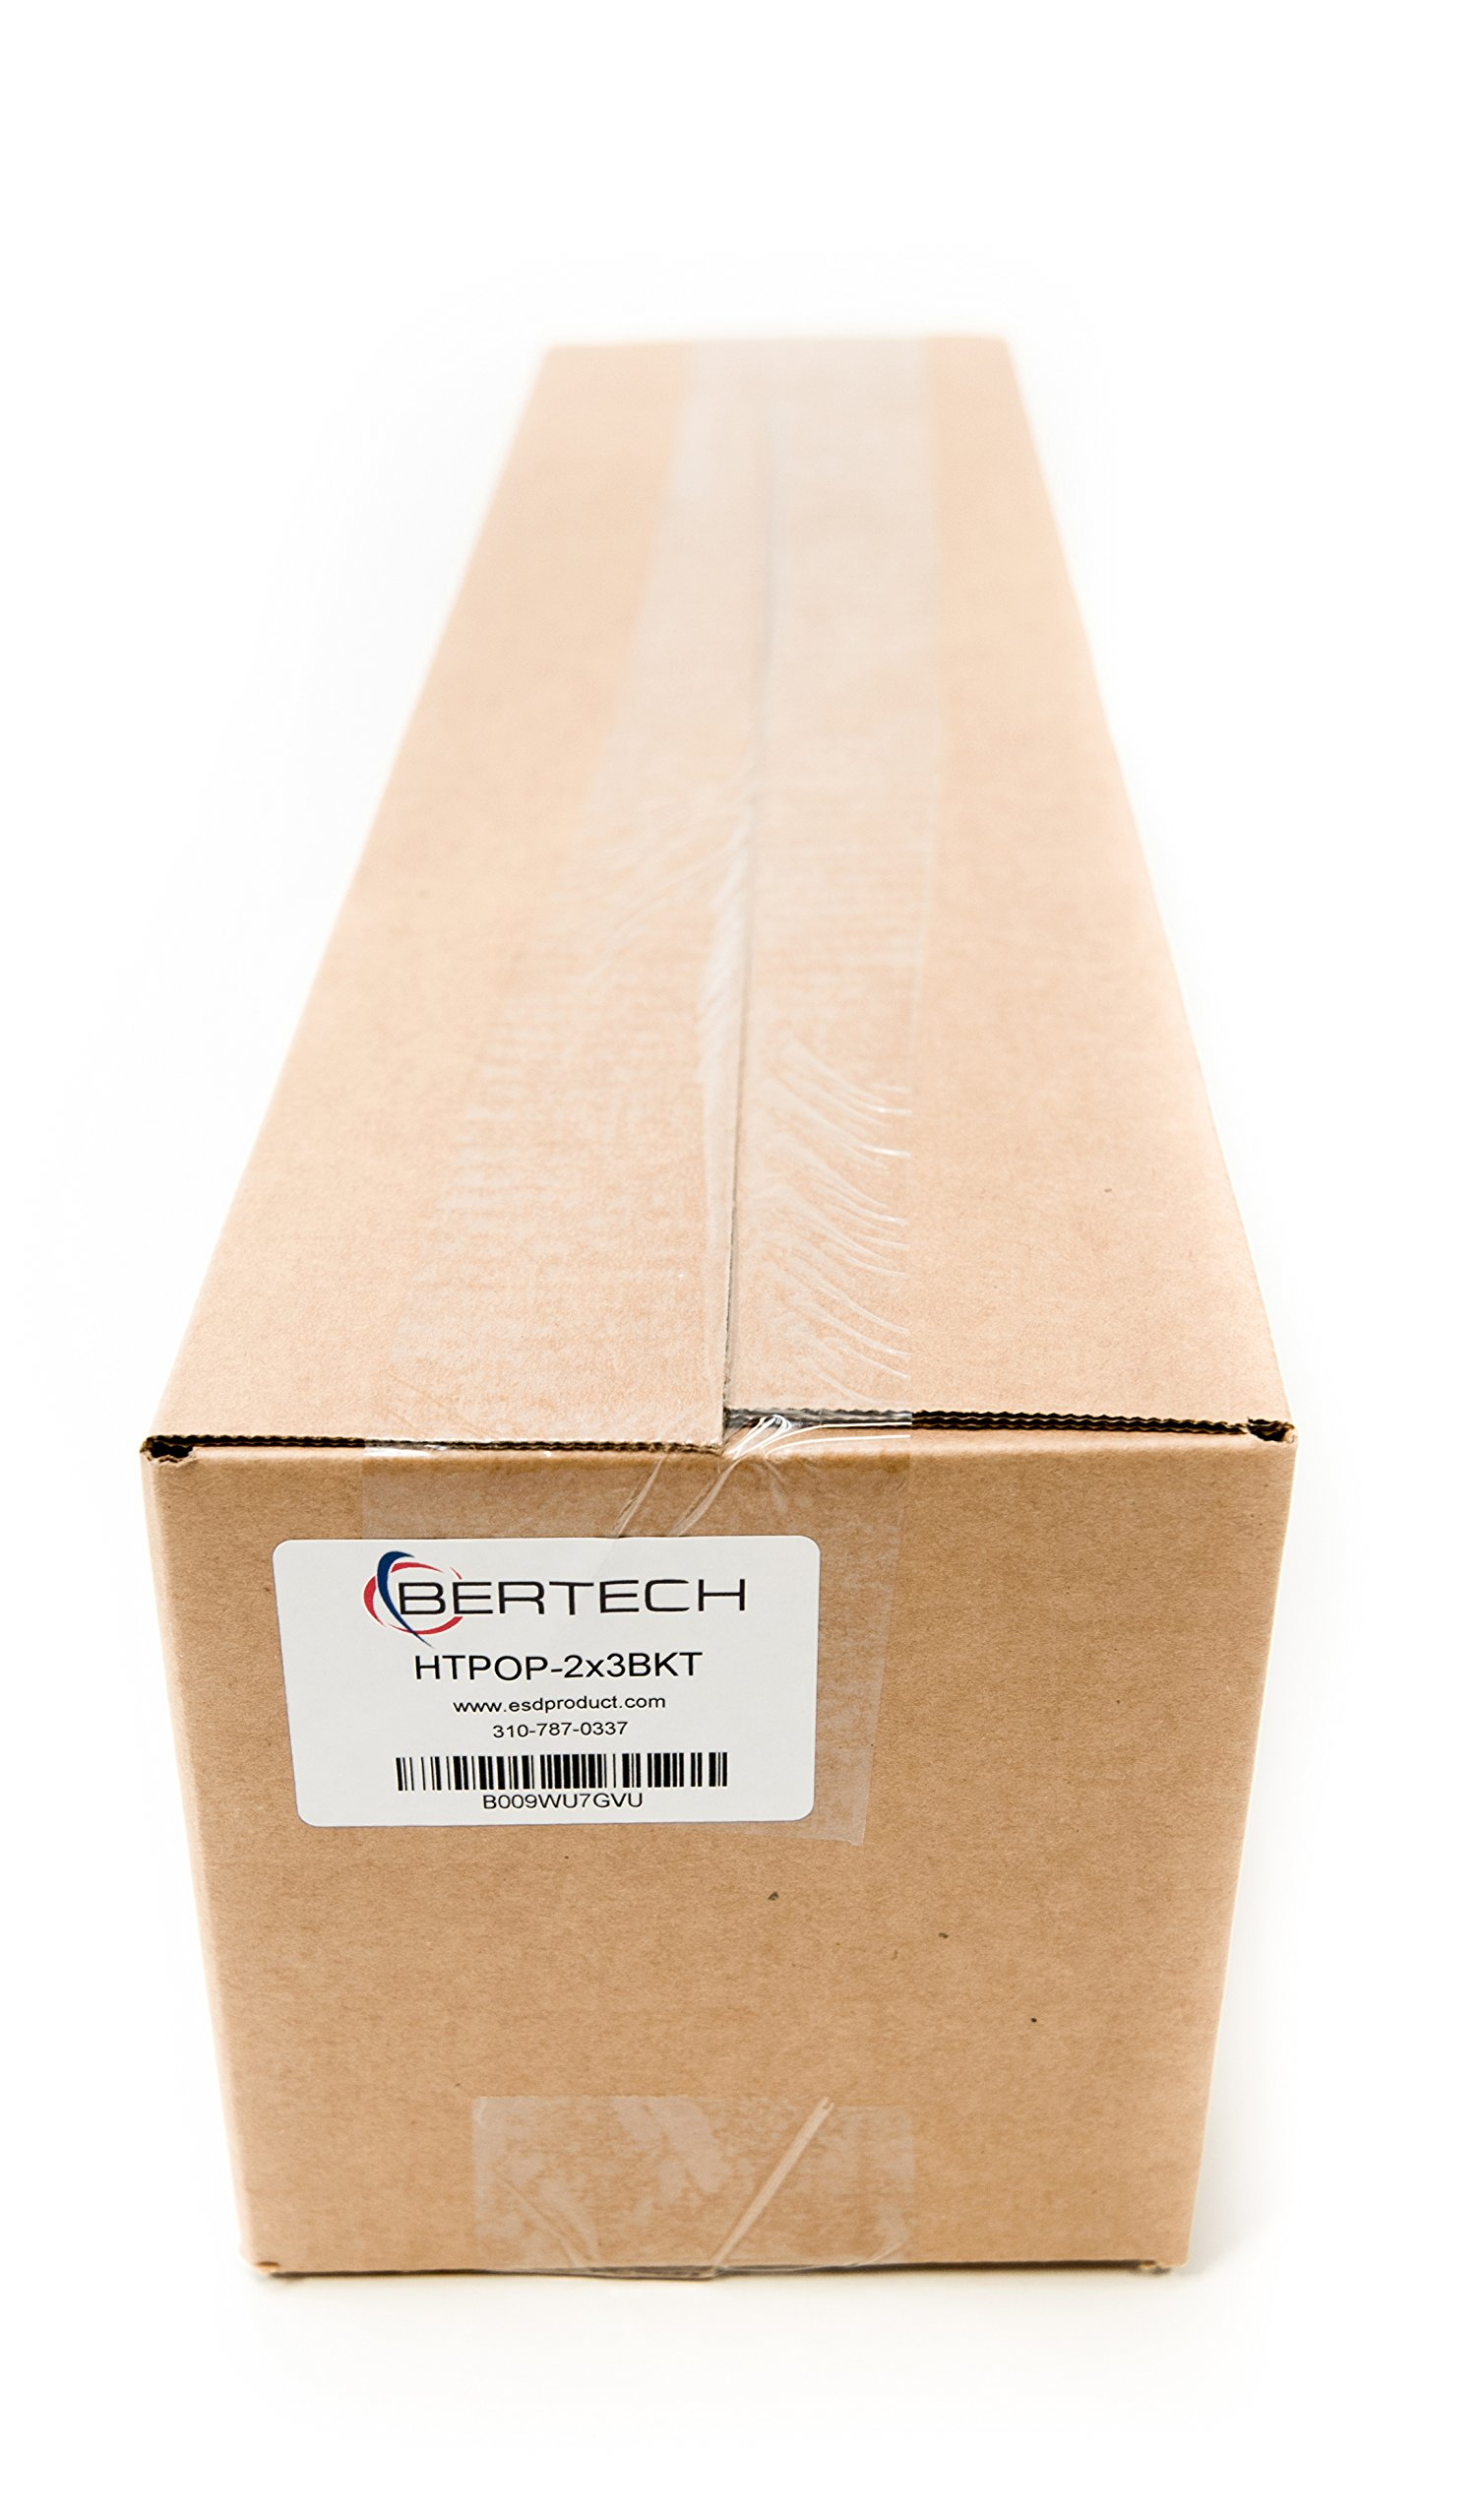 Bertech ESD Foam Mat Kit with a Wrist Strap and Grounding Cord, 2' Wide x 3' Long x 0.375'' Thick, Blue, Made in USA by Bertech (Image #4)